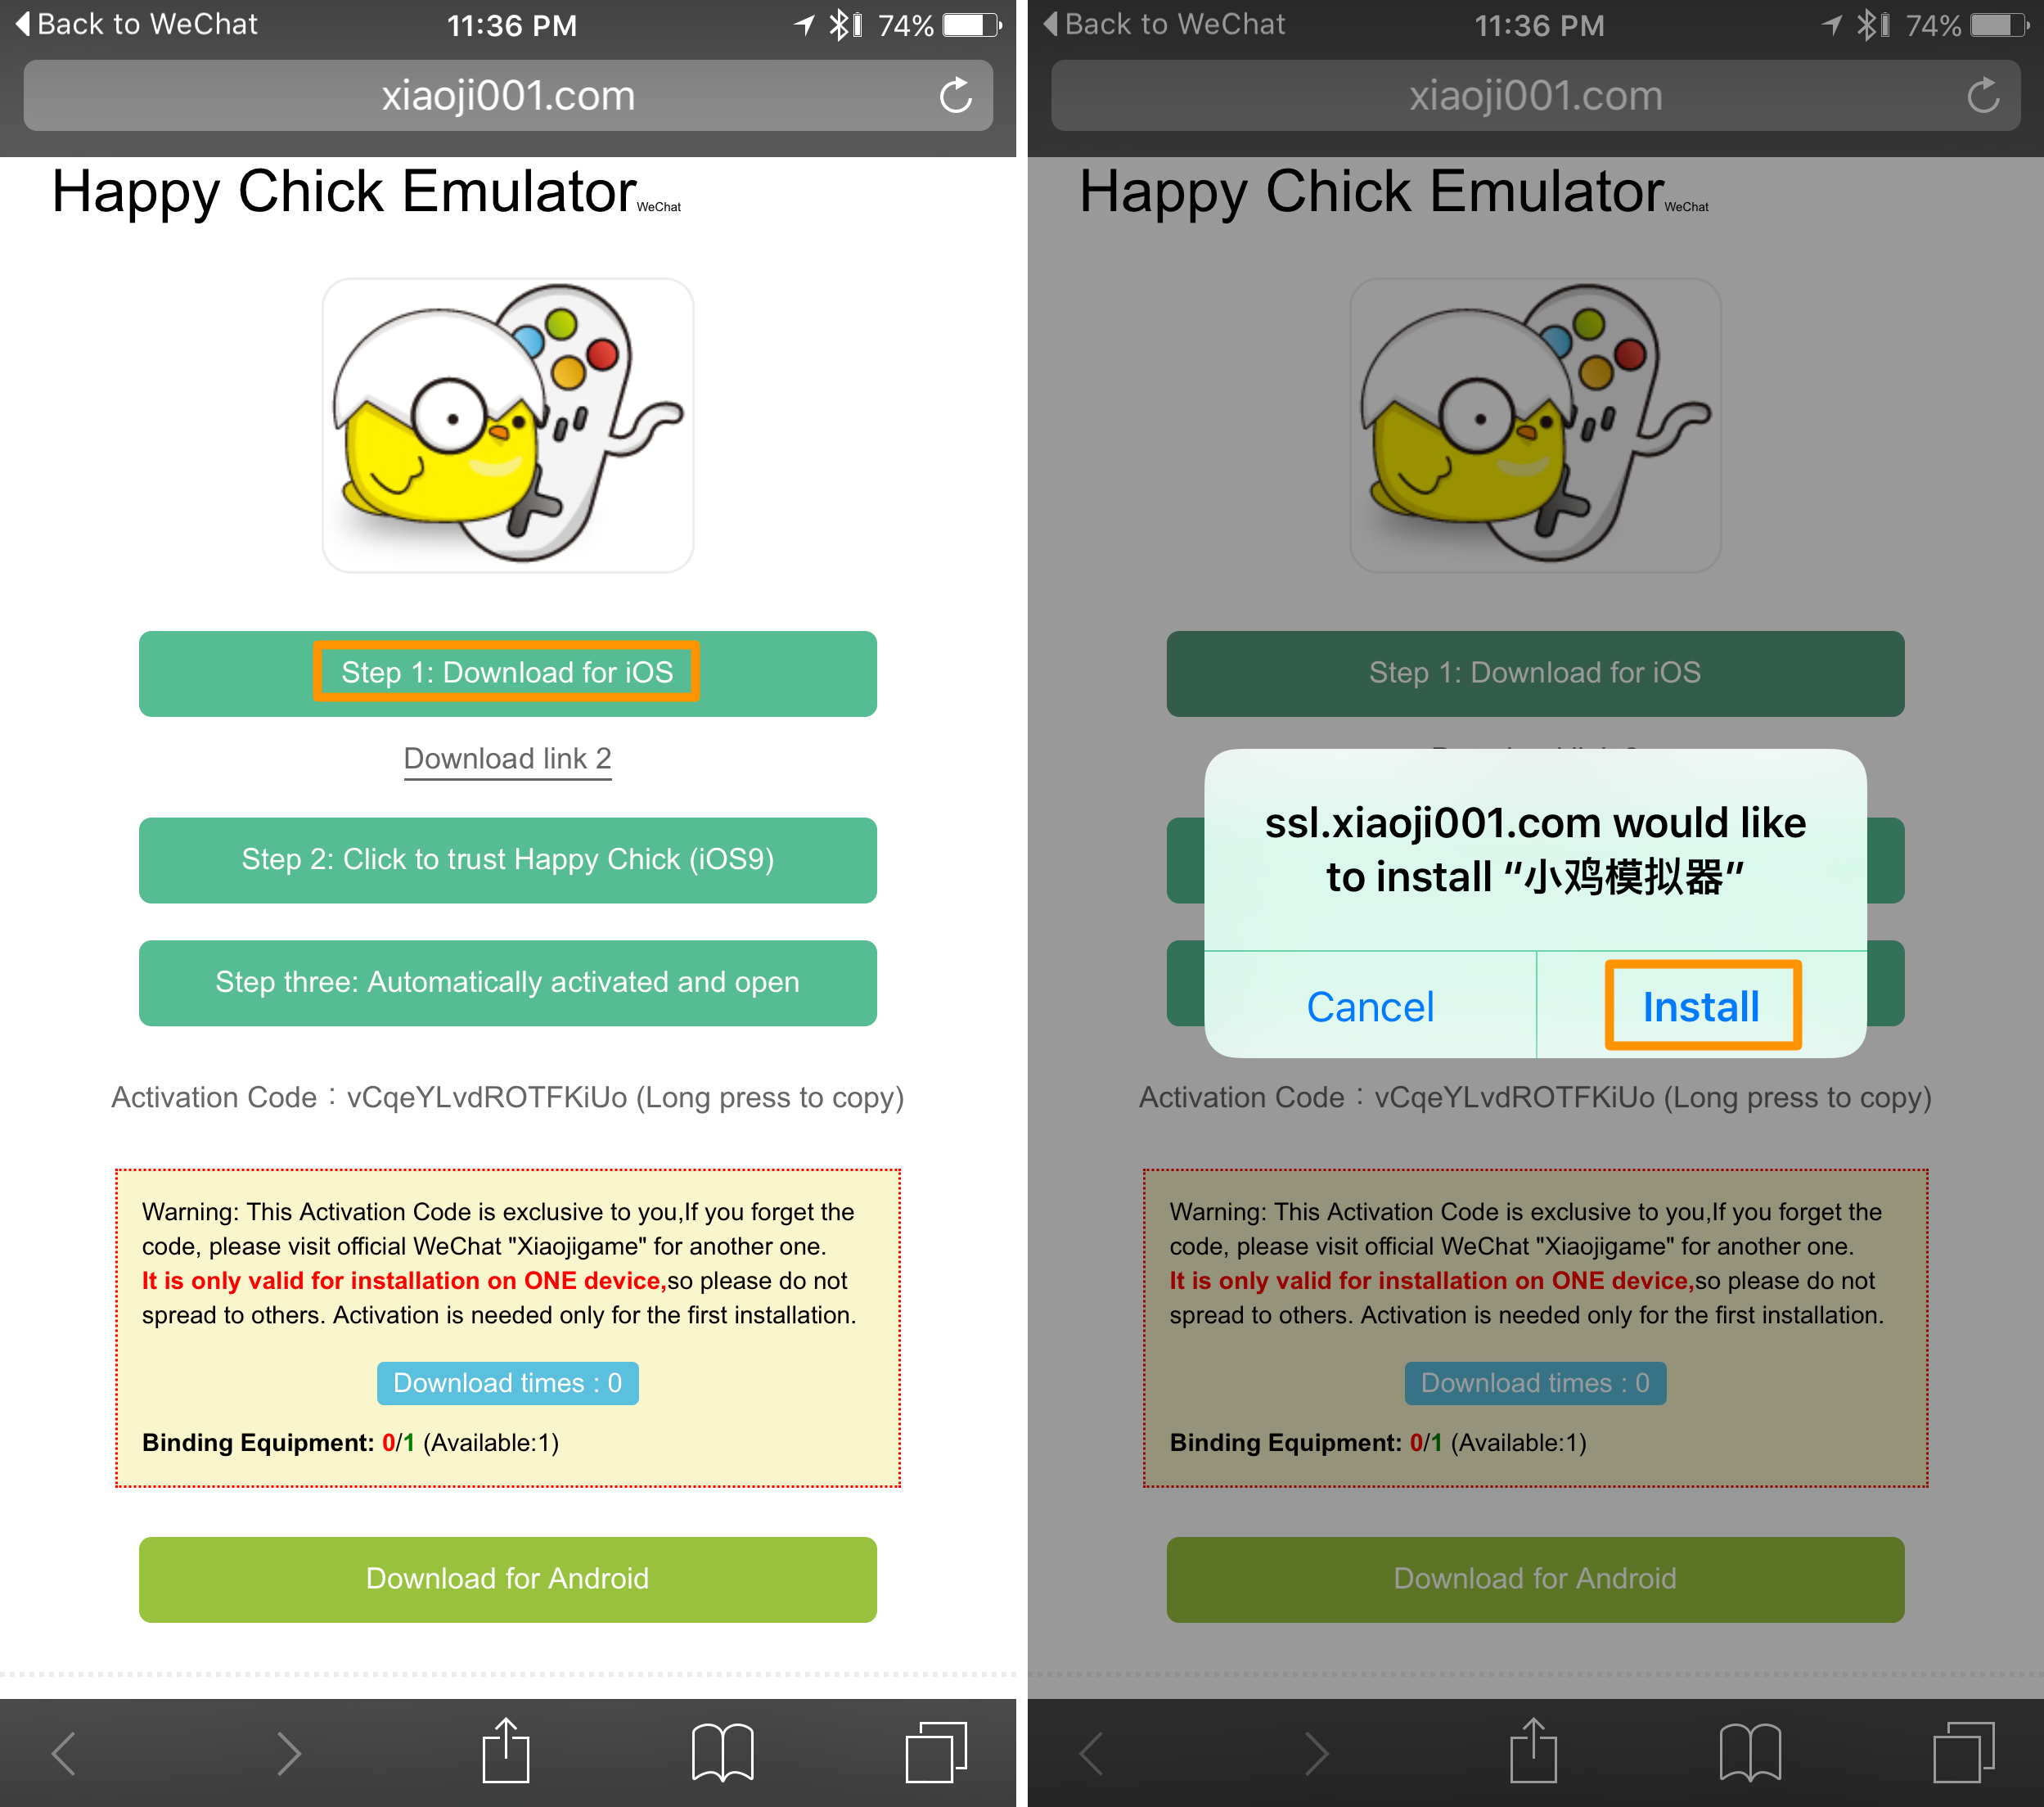 wechat emulator download and install from safari